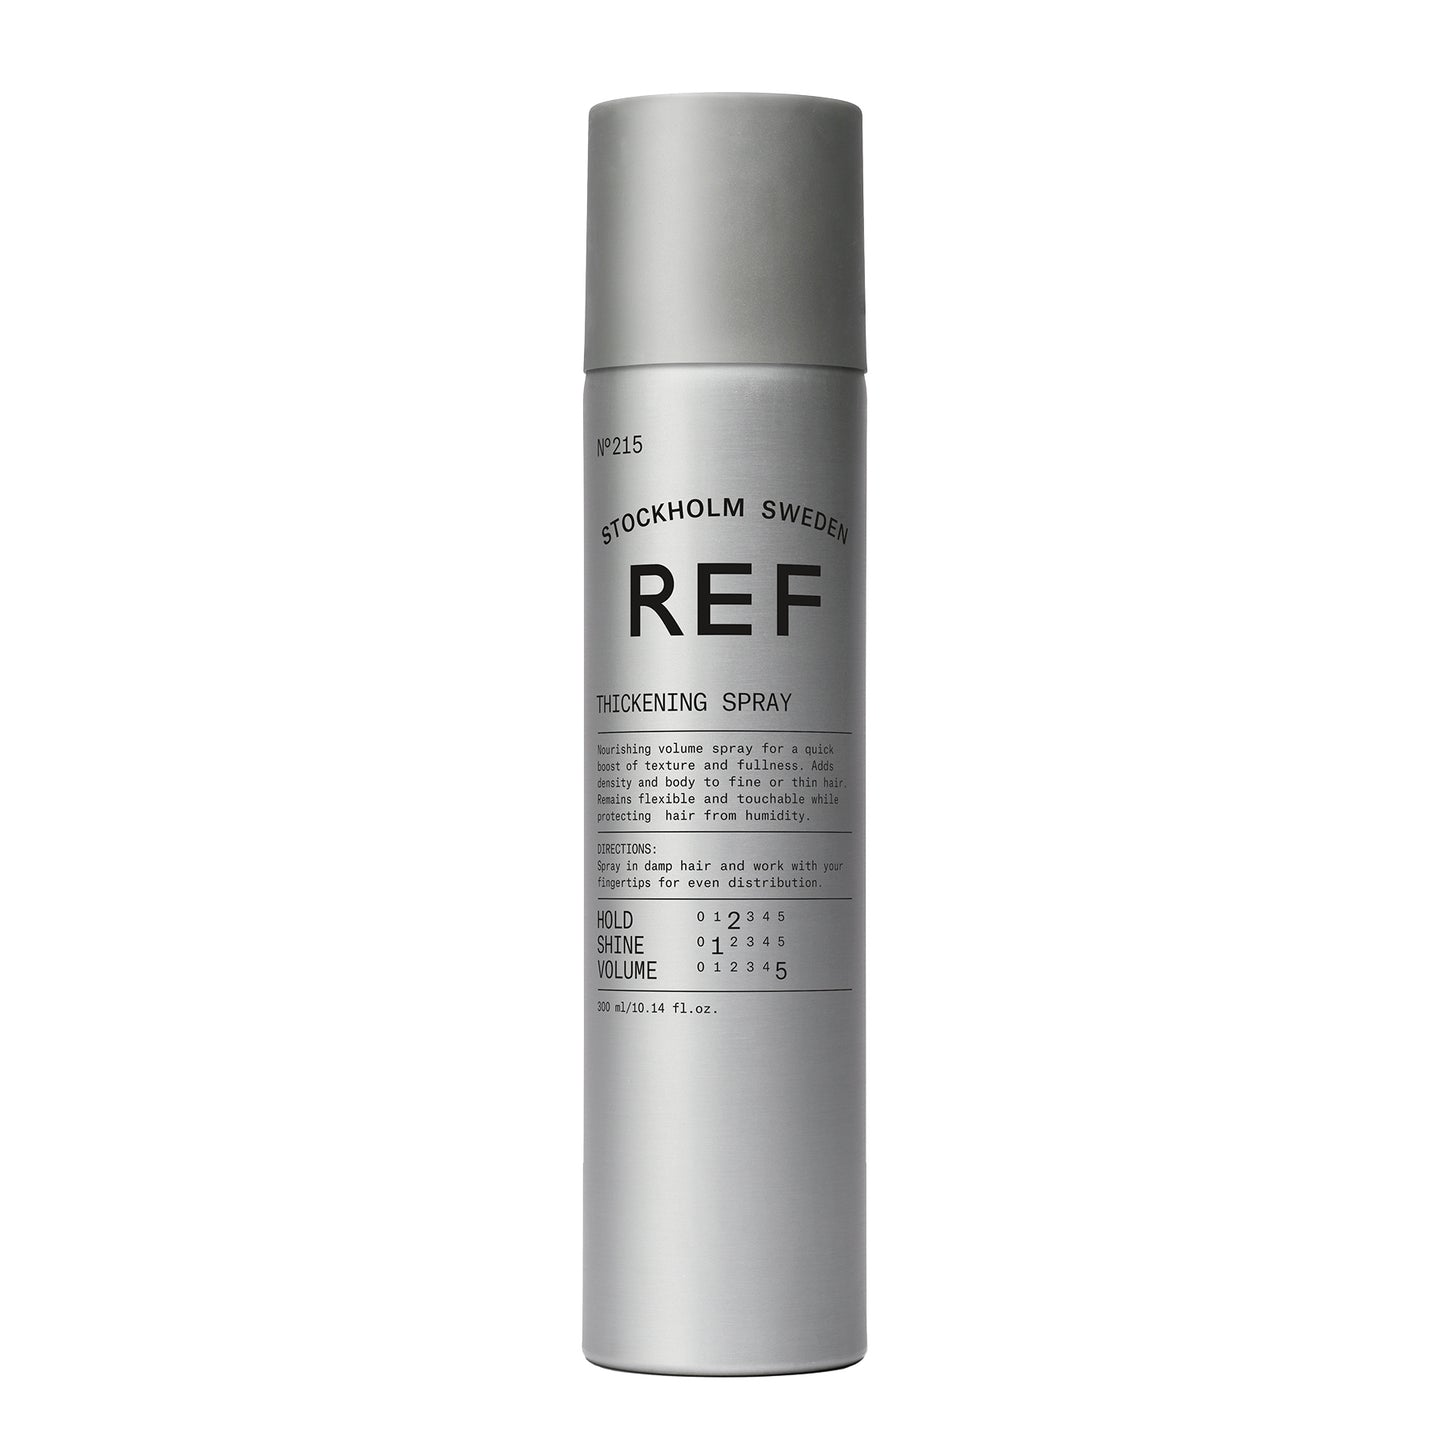 REF 215 Thickening Spray